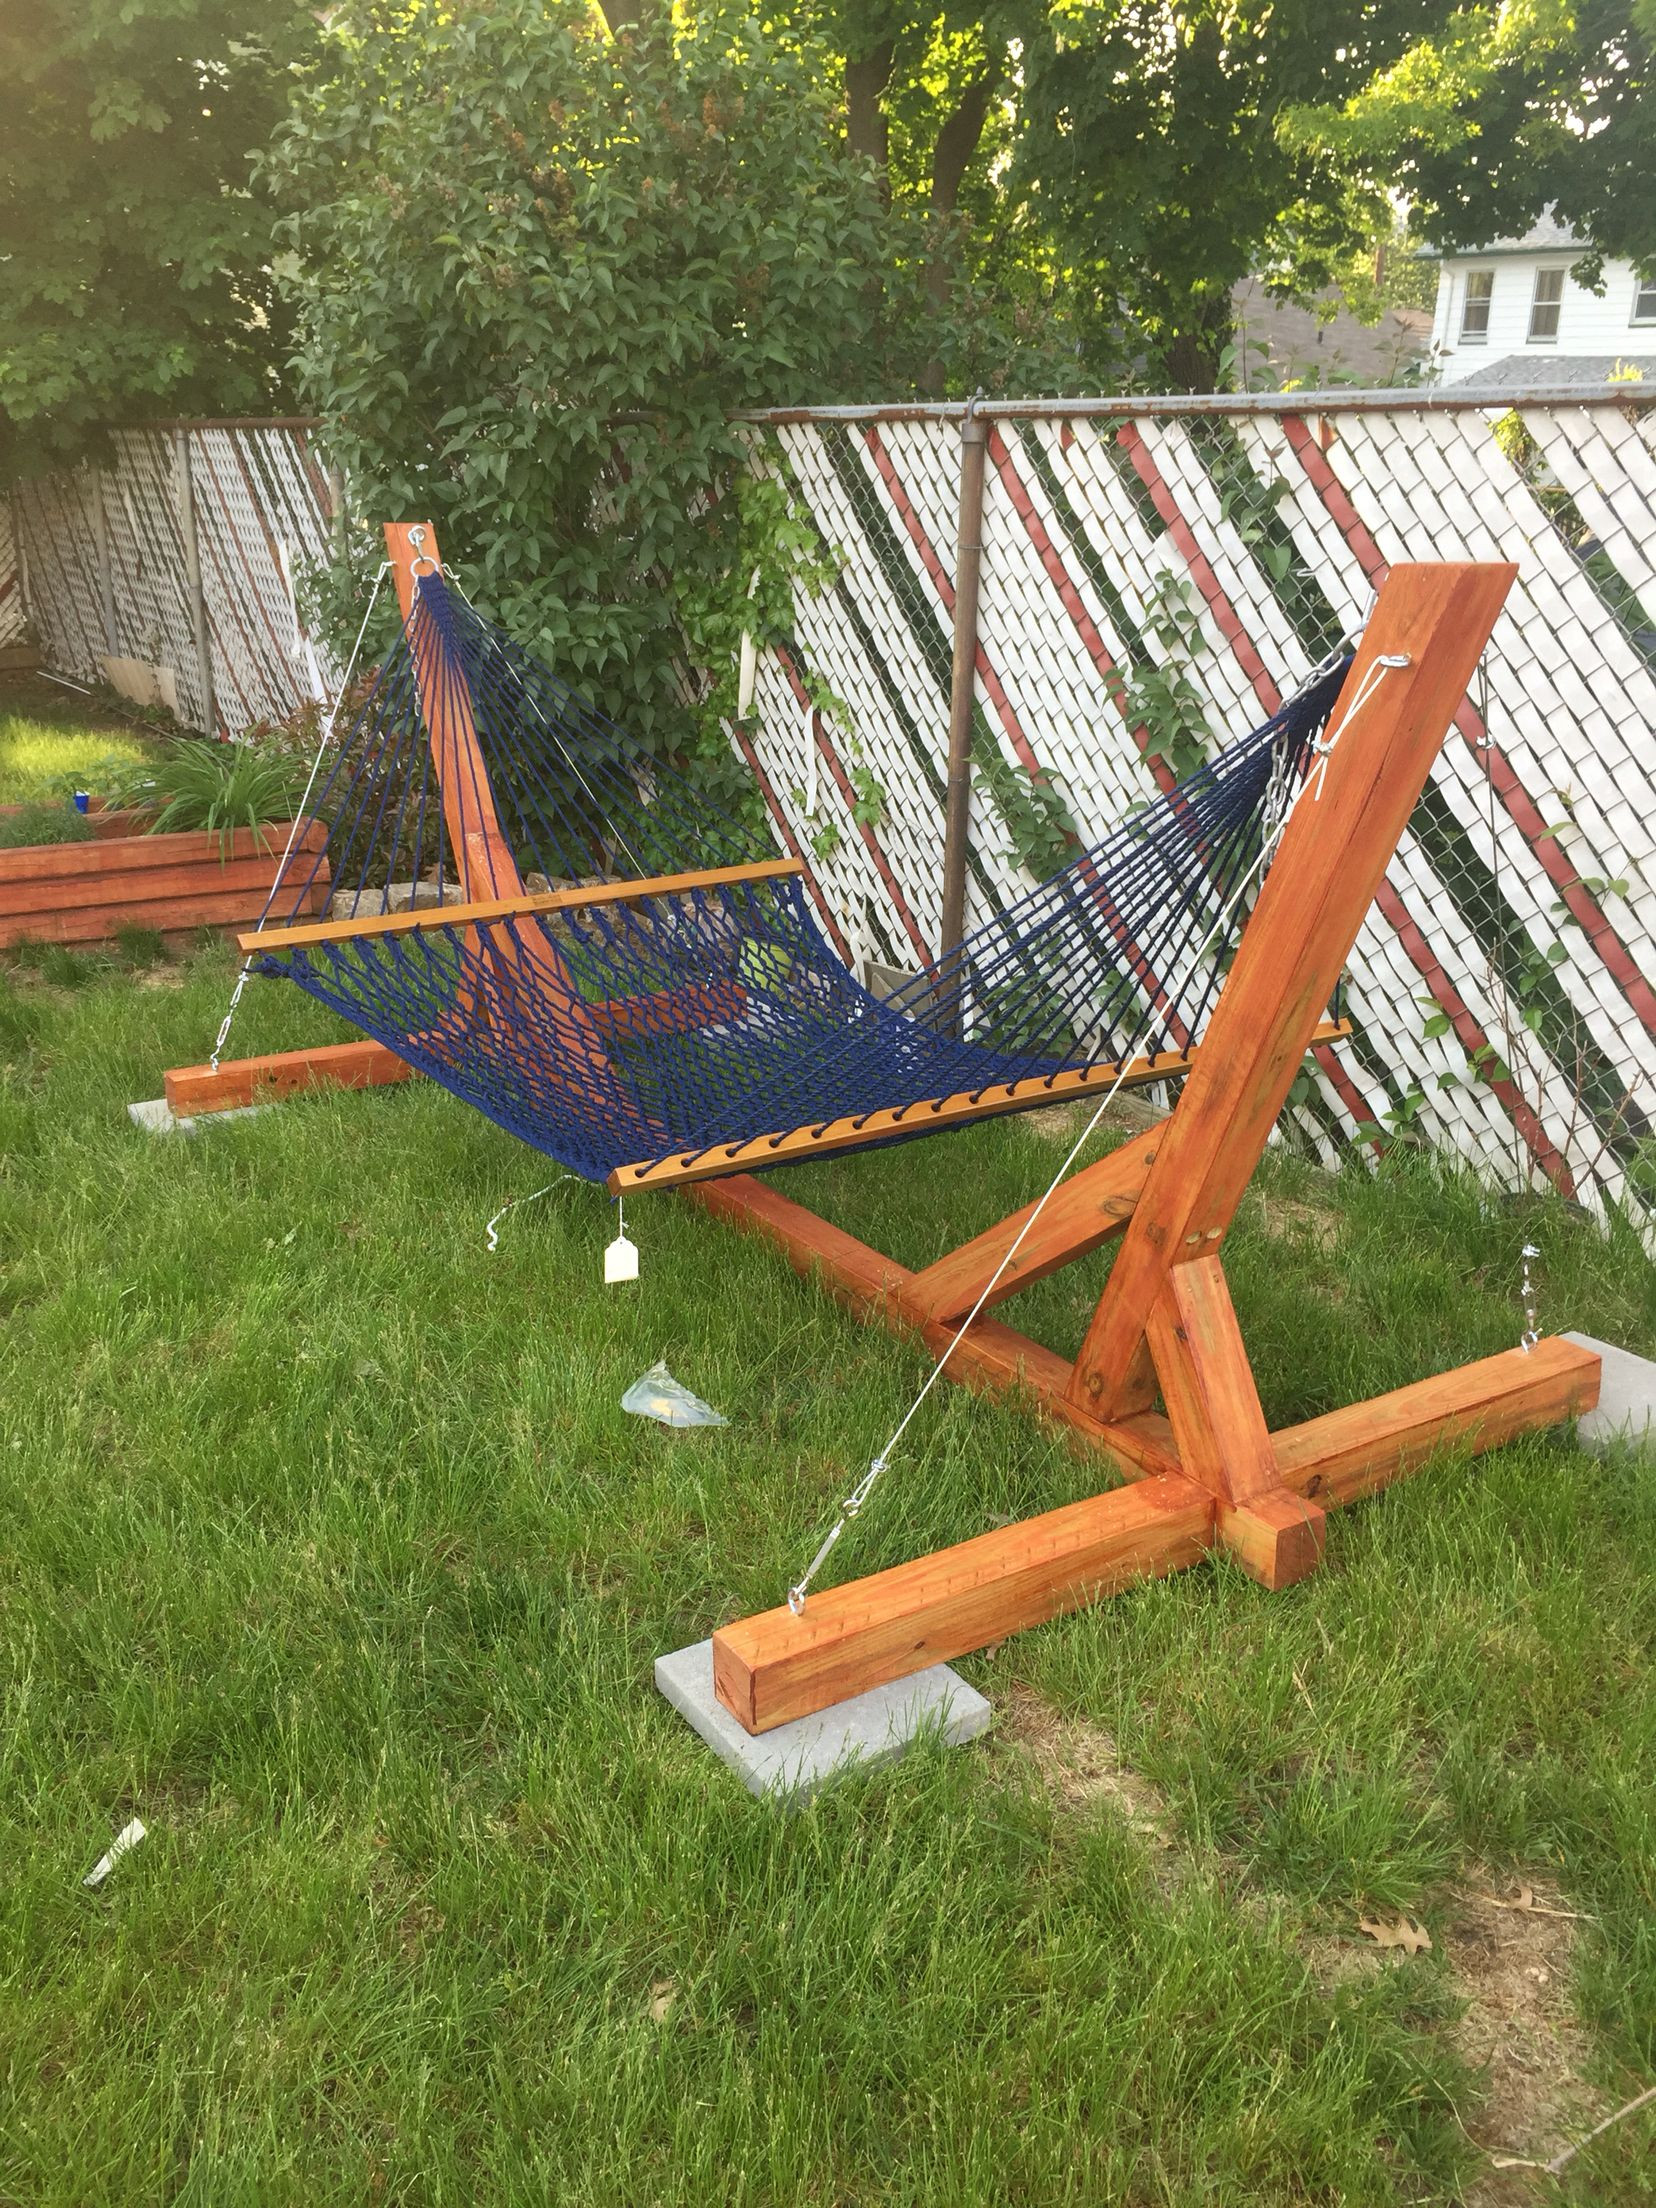 Best ideas about DIY Hammock Stand Plans . Save or Pin 15 Inexpensive DIY Hammock Stand Tutorial Guide Now.